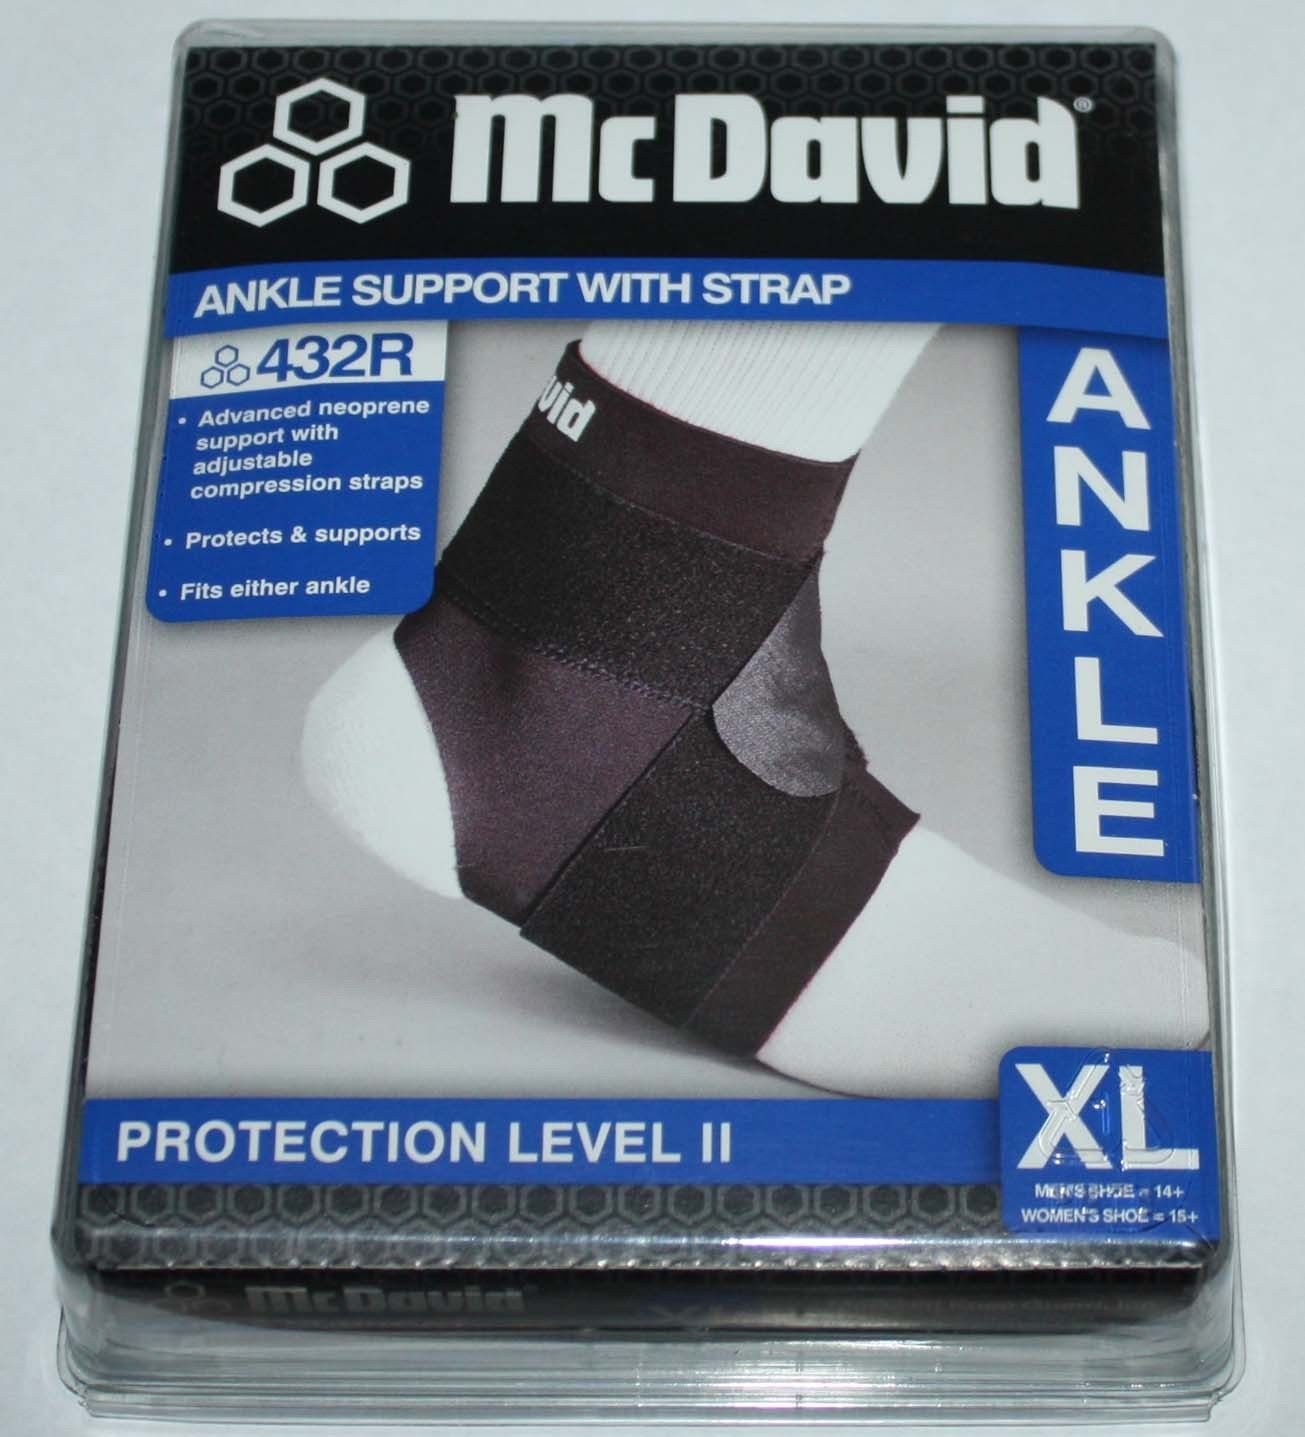 McDavid Protection Level 11 Black Ankle Support With Strap 432R (X-Large) 11351